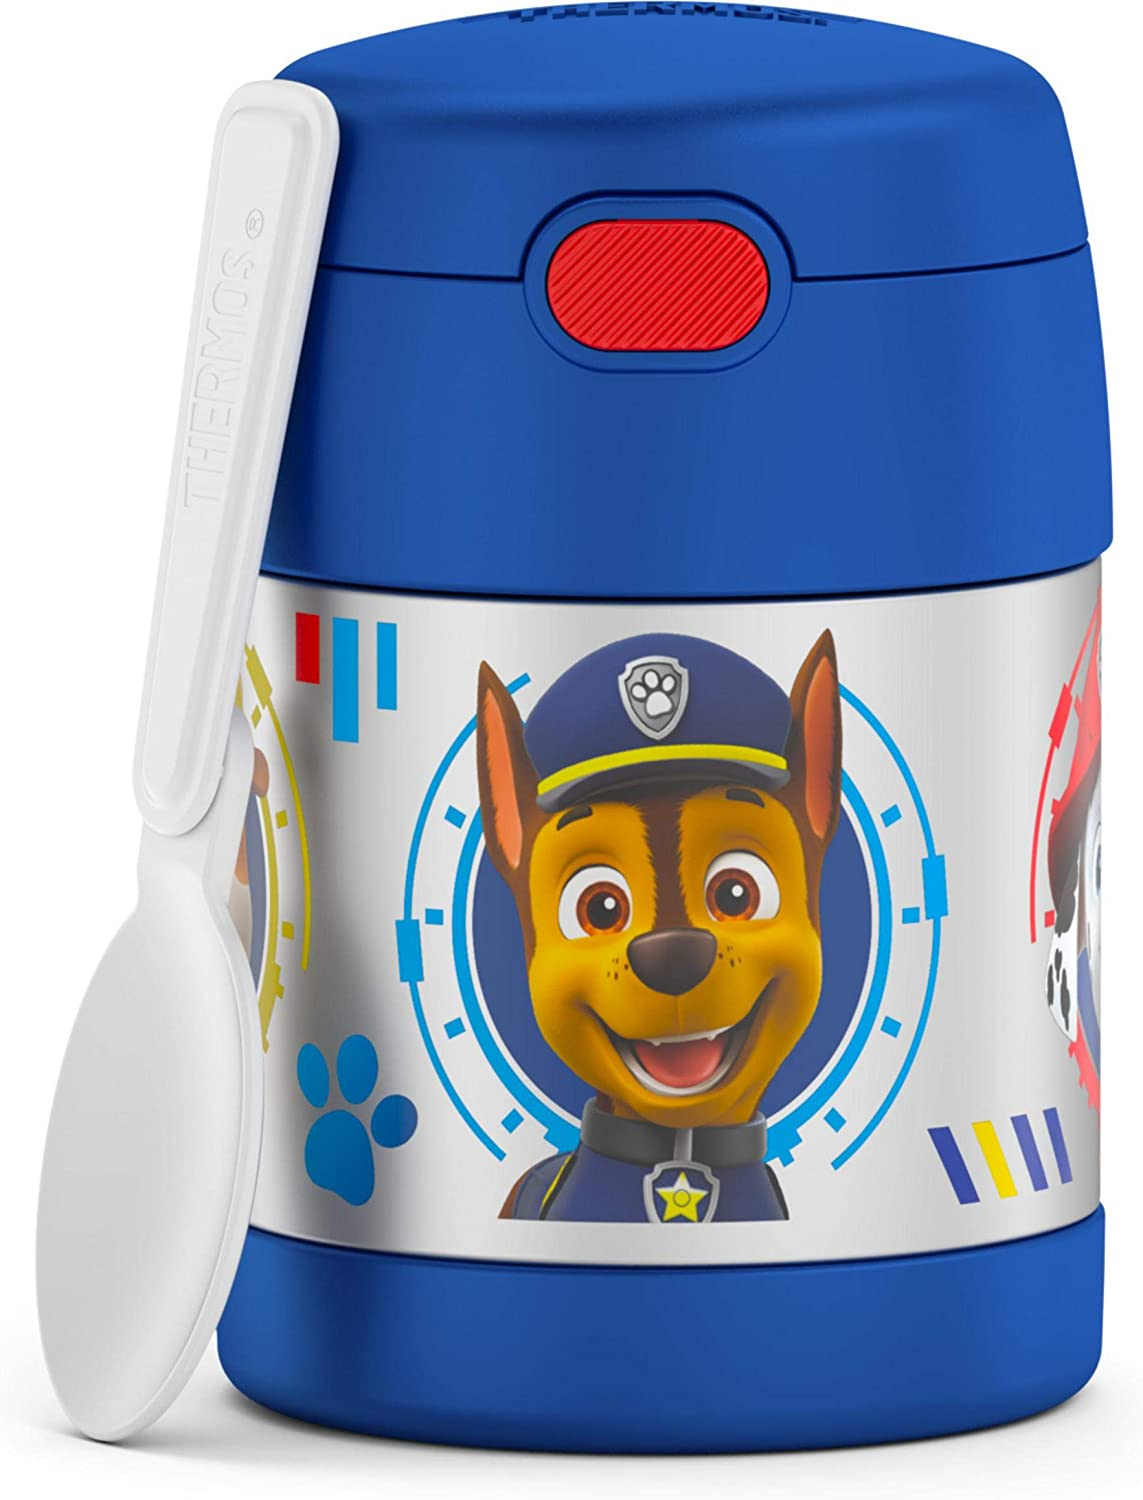 THERMOS FUNTAINER 10 Ounce Stainless Steel Vacuum Insulated Kids Food Jar, Paw Patrol - Boy